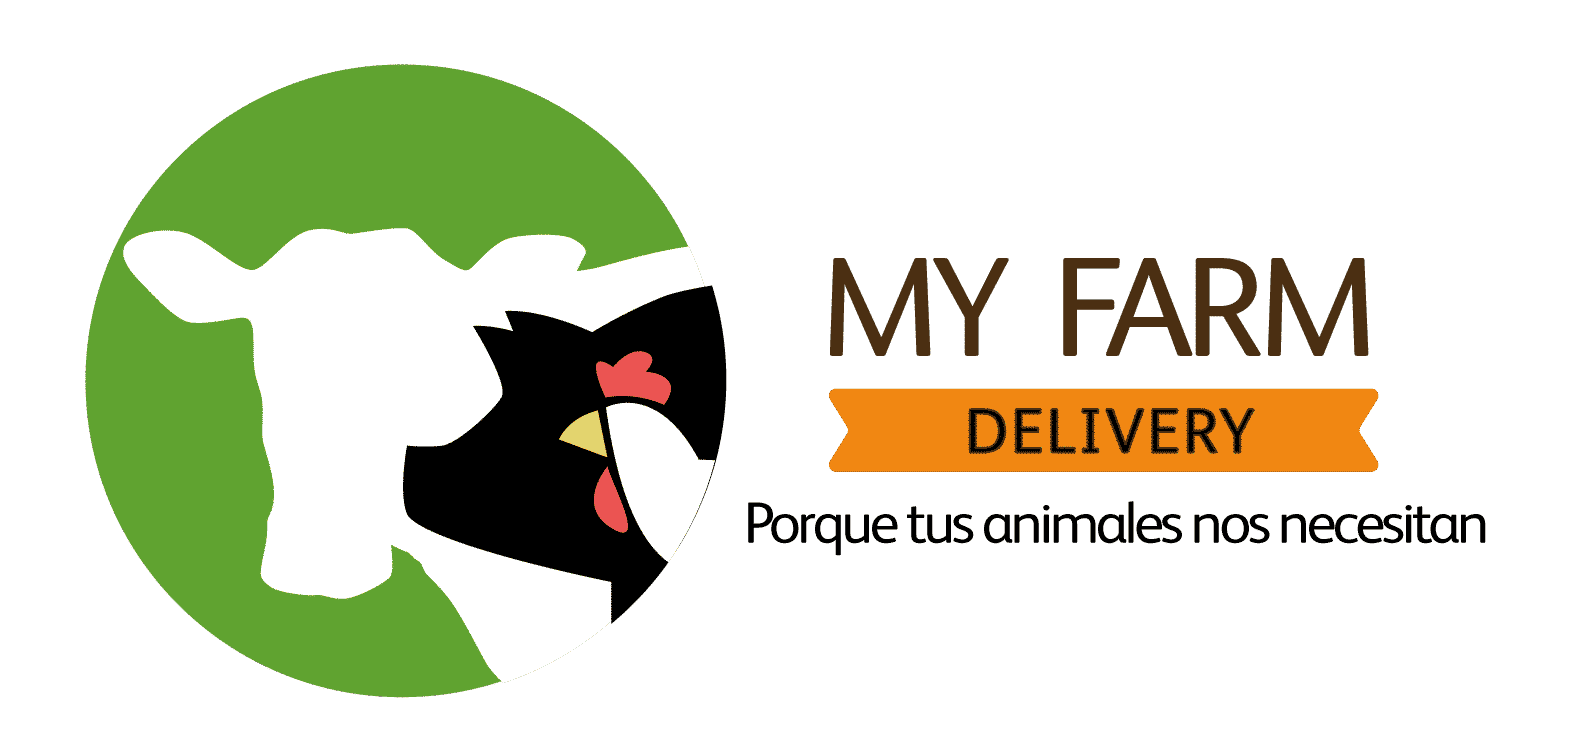 My Farm Delivery